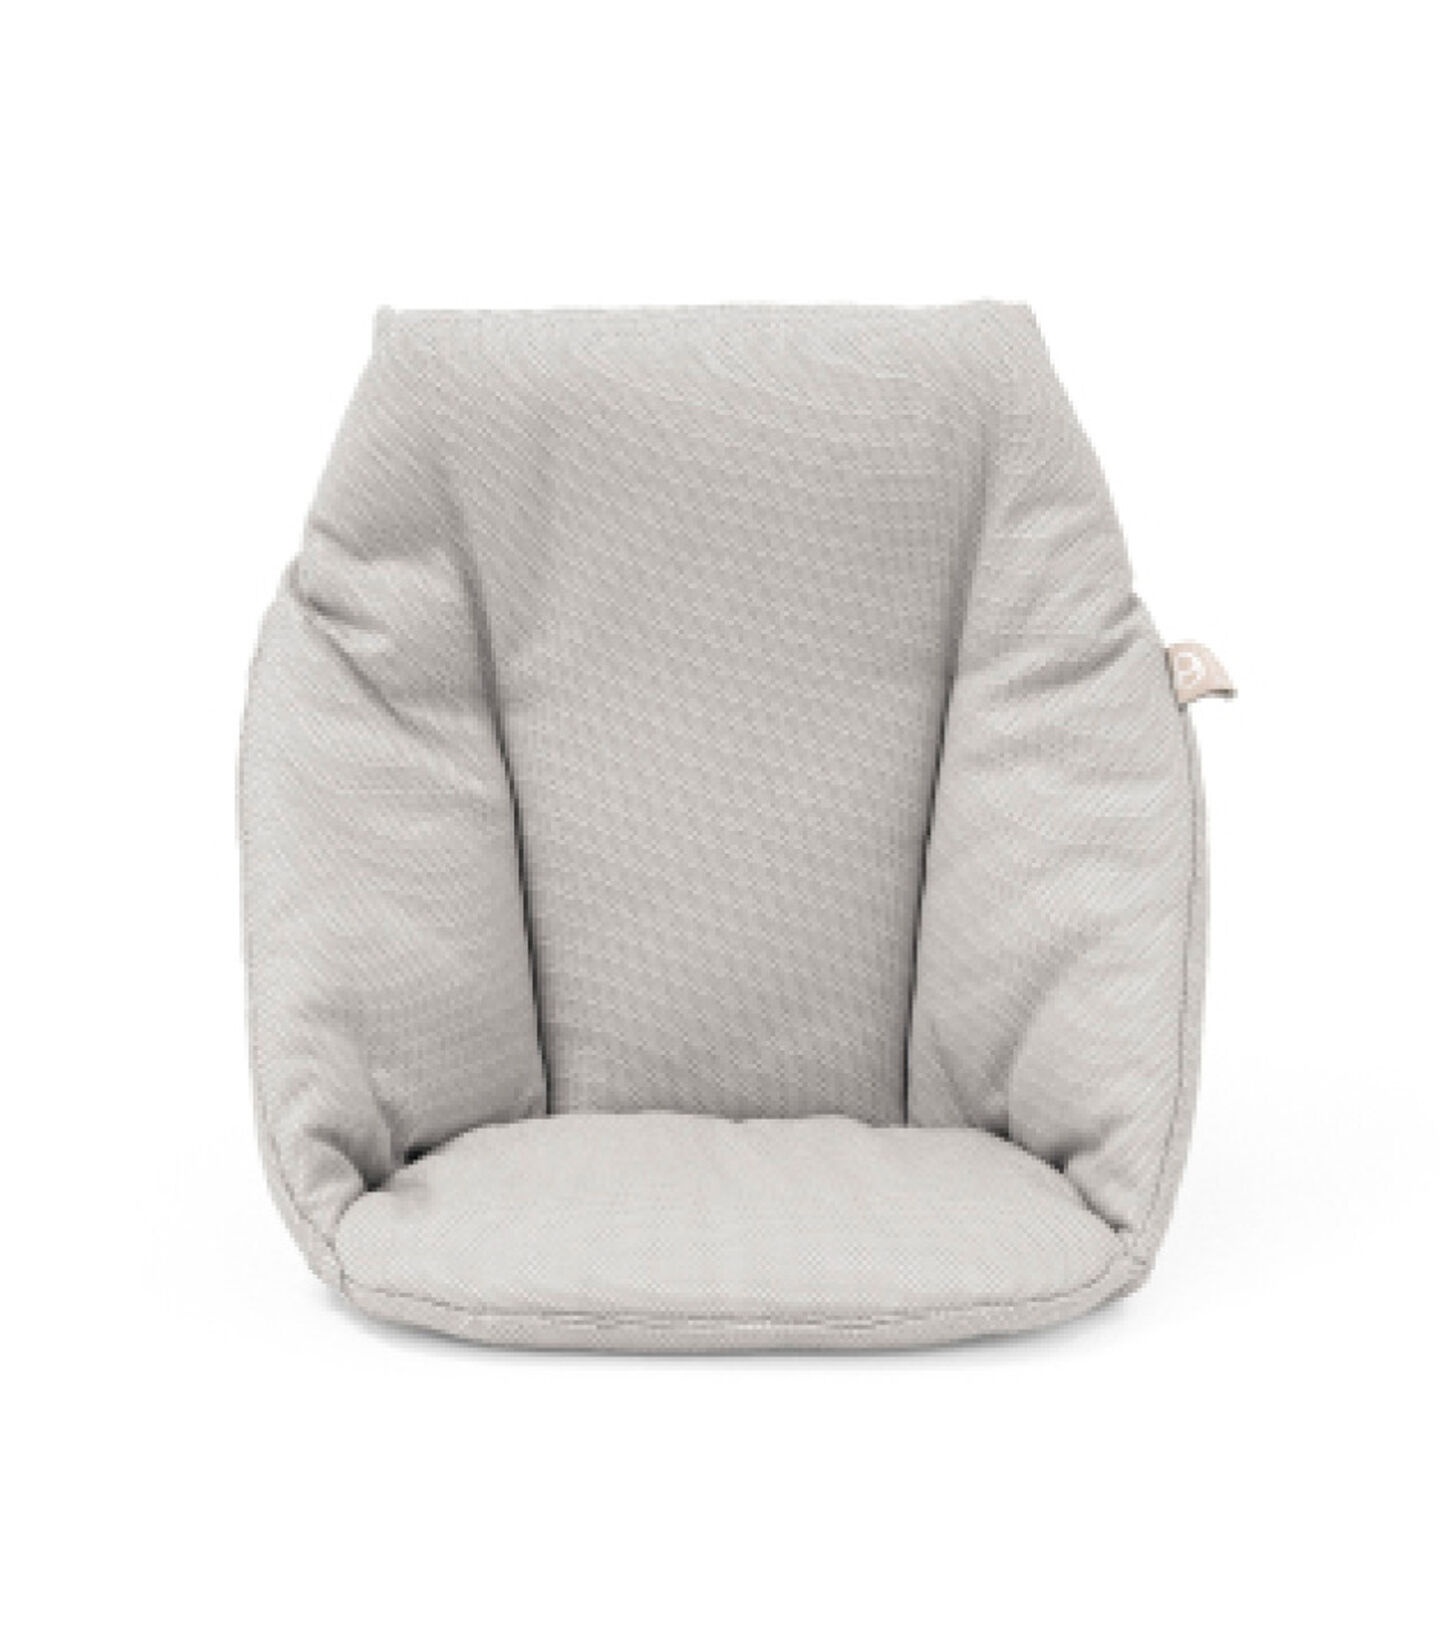 Tripp Trapp® Baby Cushion Timeless Grey OCS, Timeless Grey, mainview view 2